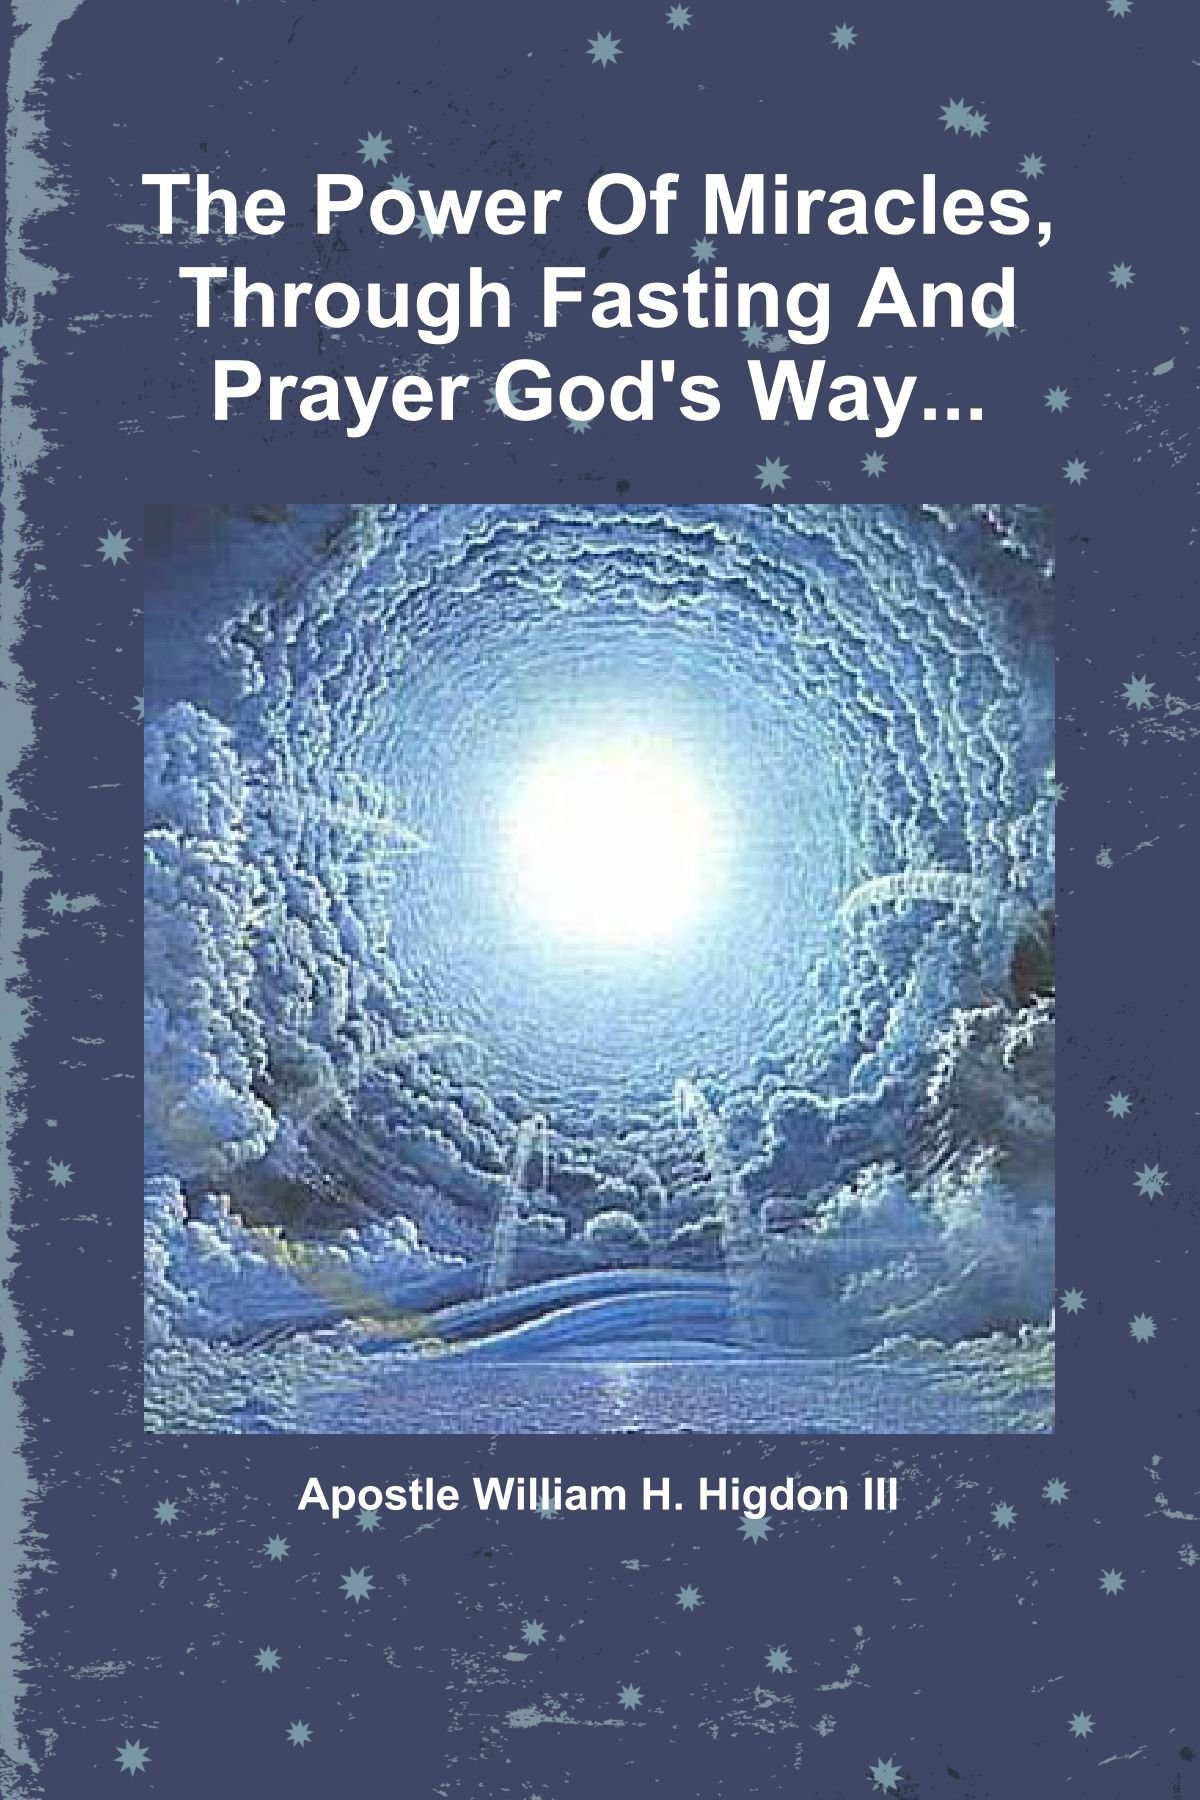 Book by Apostle William H  Higdon III - The Power Of